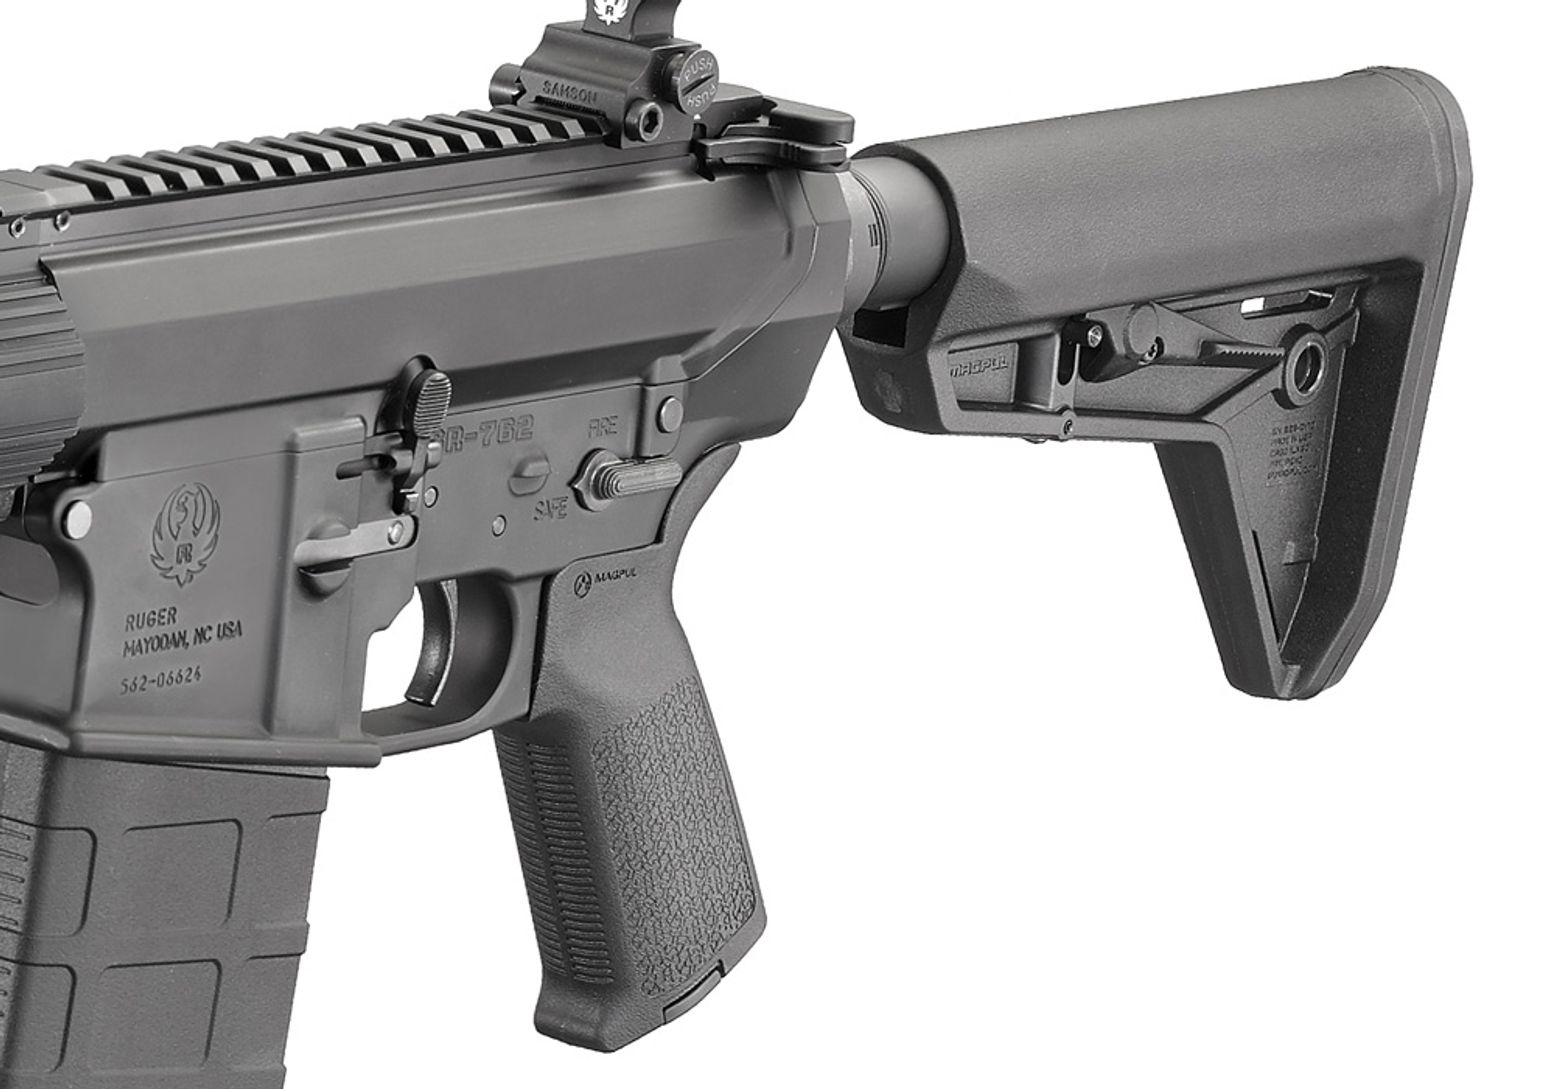 The List: Top 3 .308 Semi-Automatic Rifles on the Planet Today